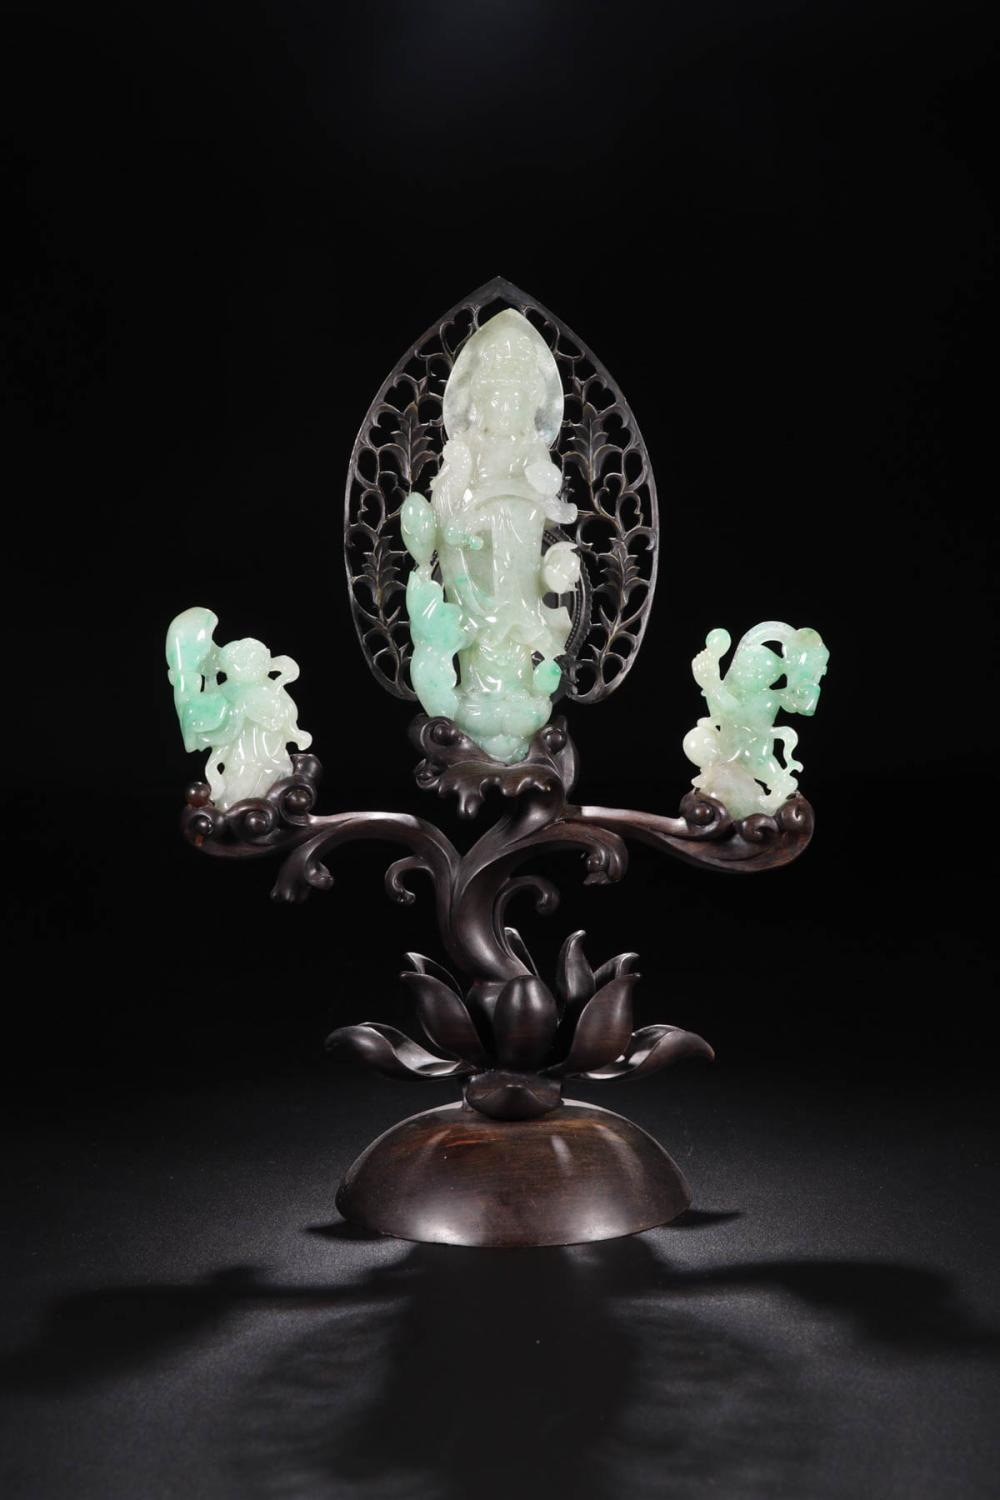 A SET OF 3 PIECES JADEITE GUANGYIN STORY ORNAMENT